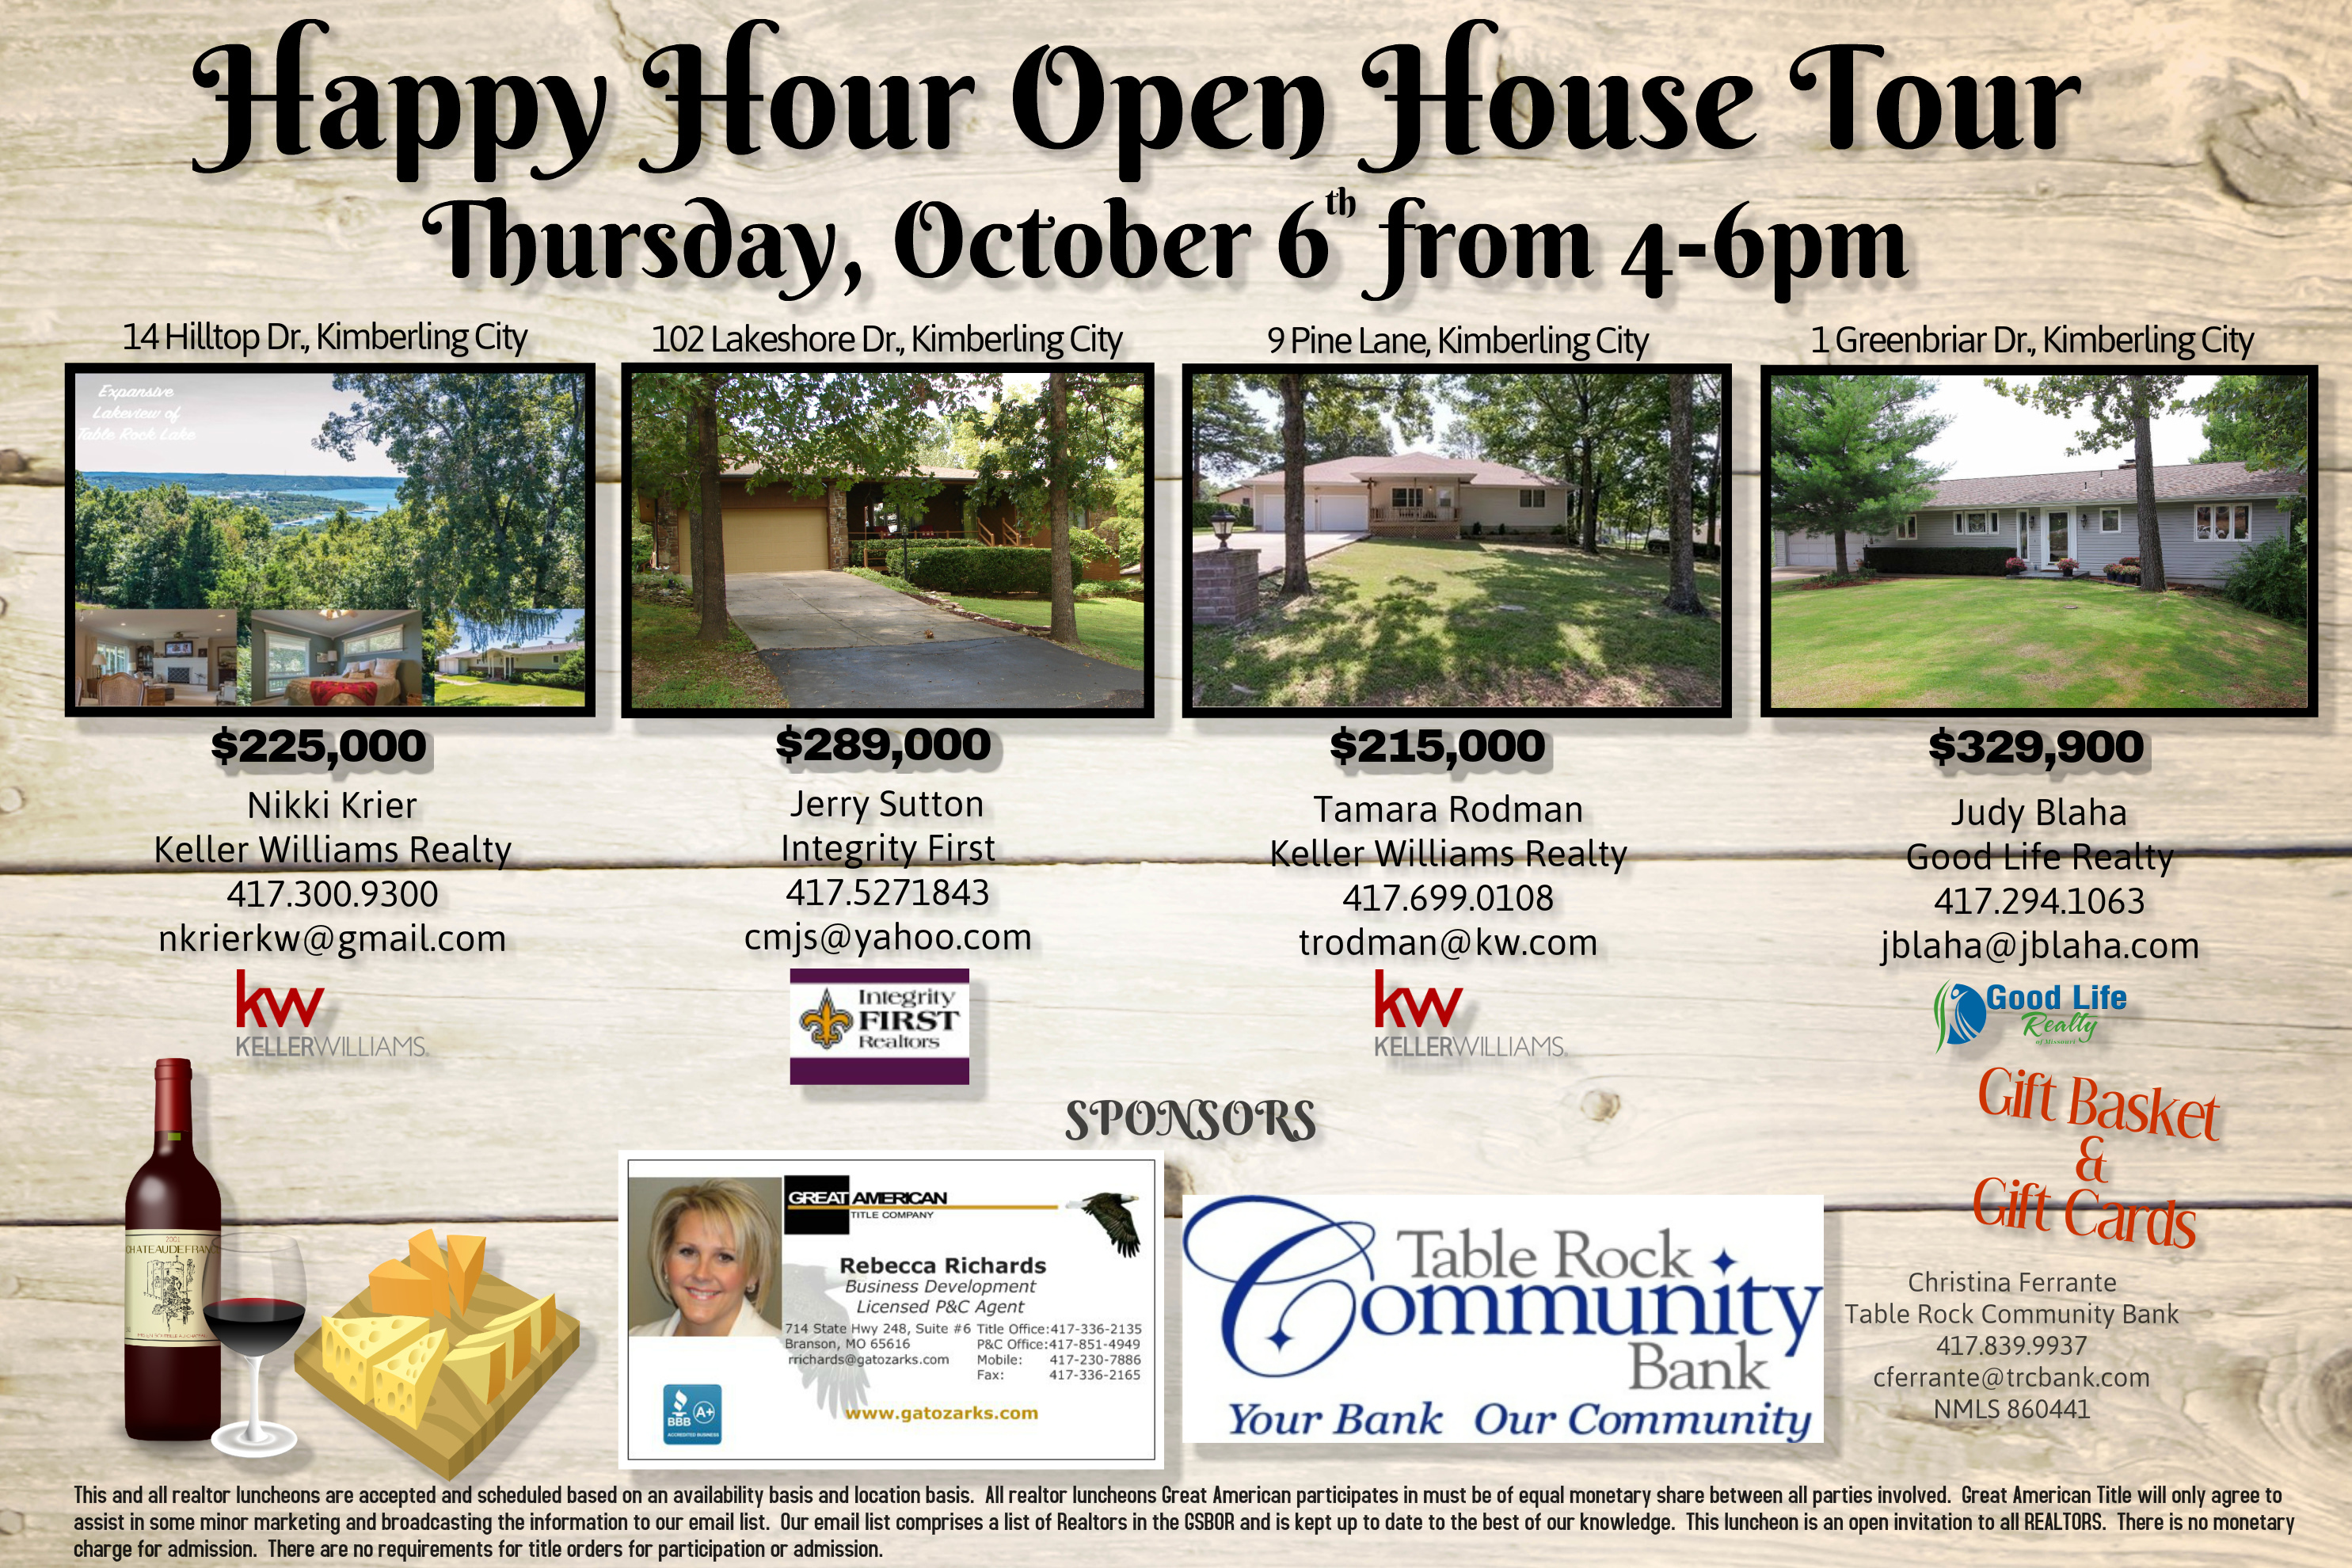 Happy Hour Open House Tour! - Great American Title Company